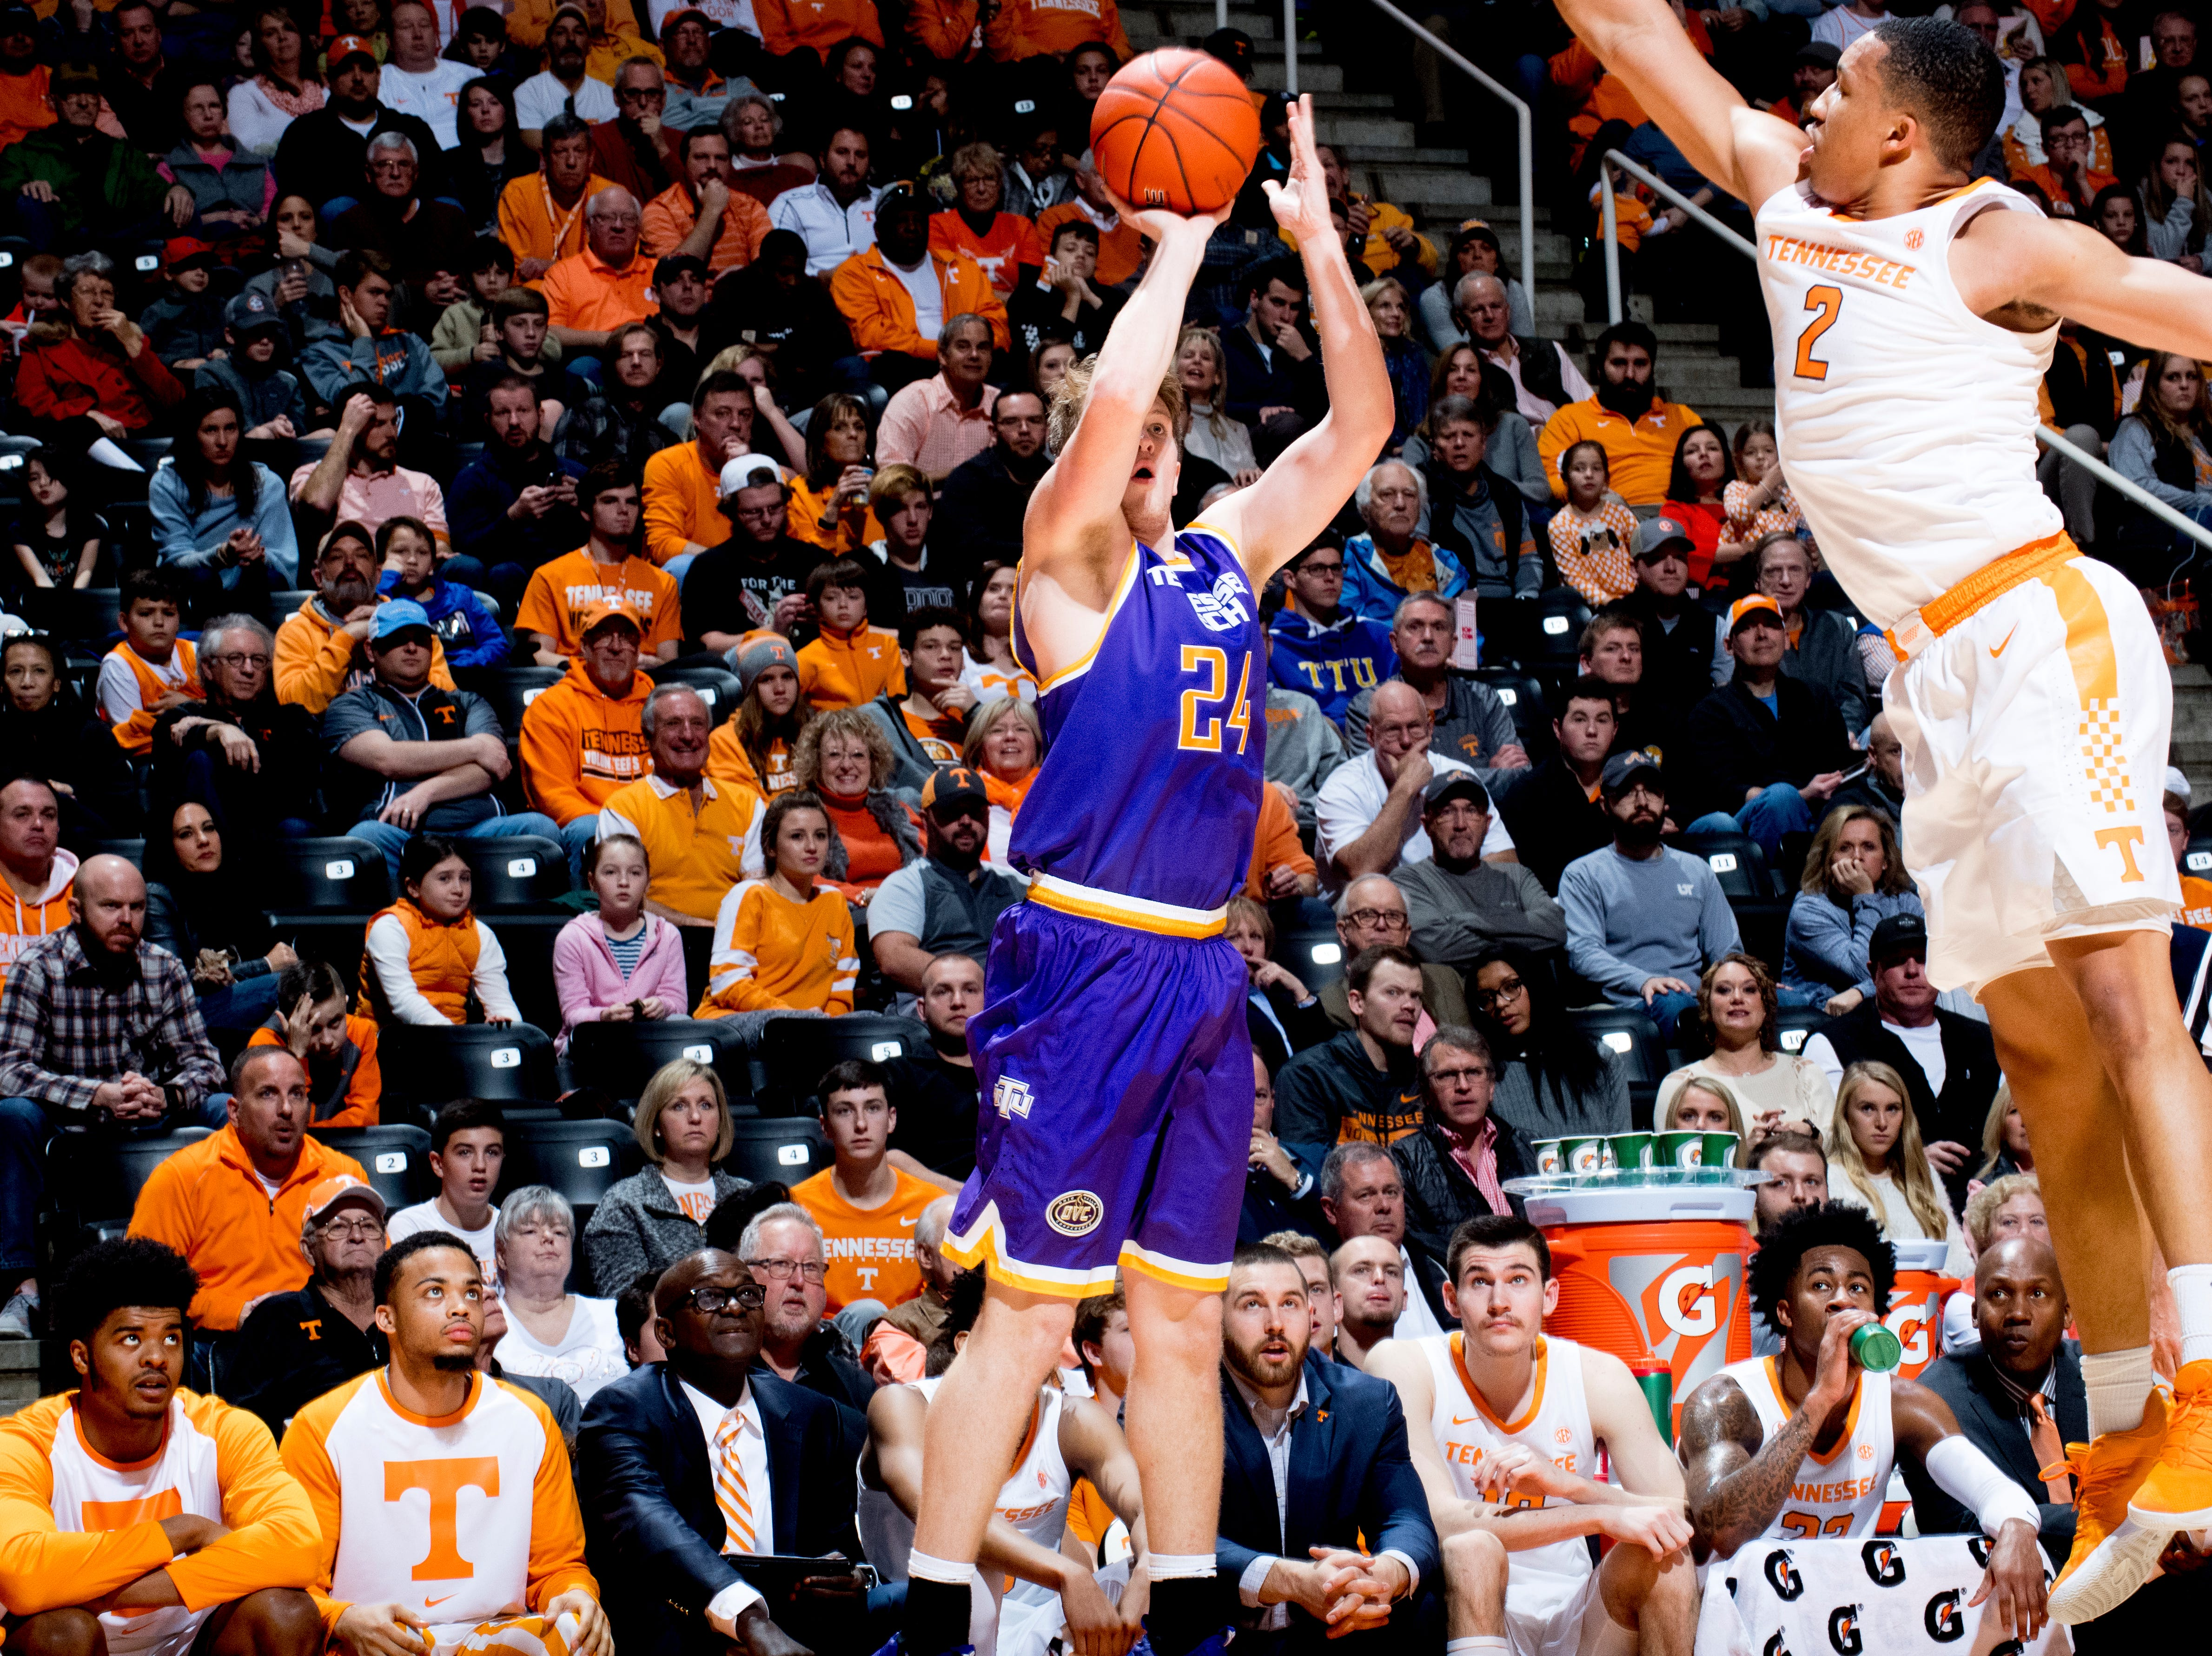 Tennessee Tech forward Garrett Golday (24) takes a shot as Tennessee forward Grant Williams (2) defends during a game between Tennessee and Tennessee Tech at Thompson-Boling Arena in Knoxville, Tennessee on Saturday, December 29, 2018.